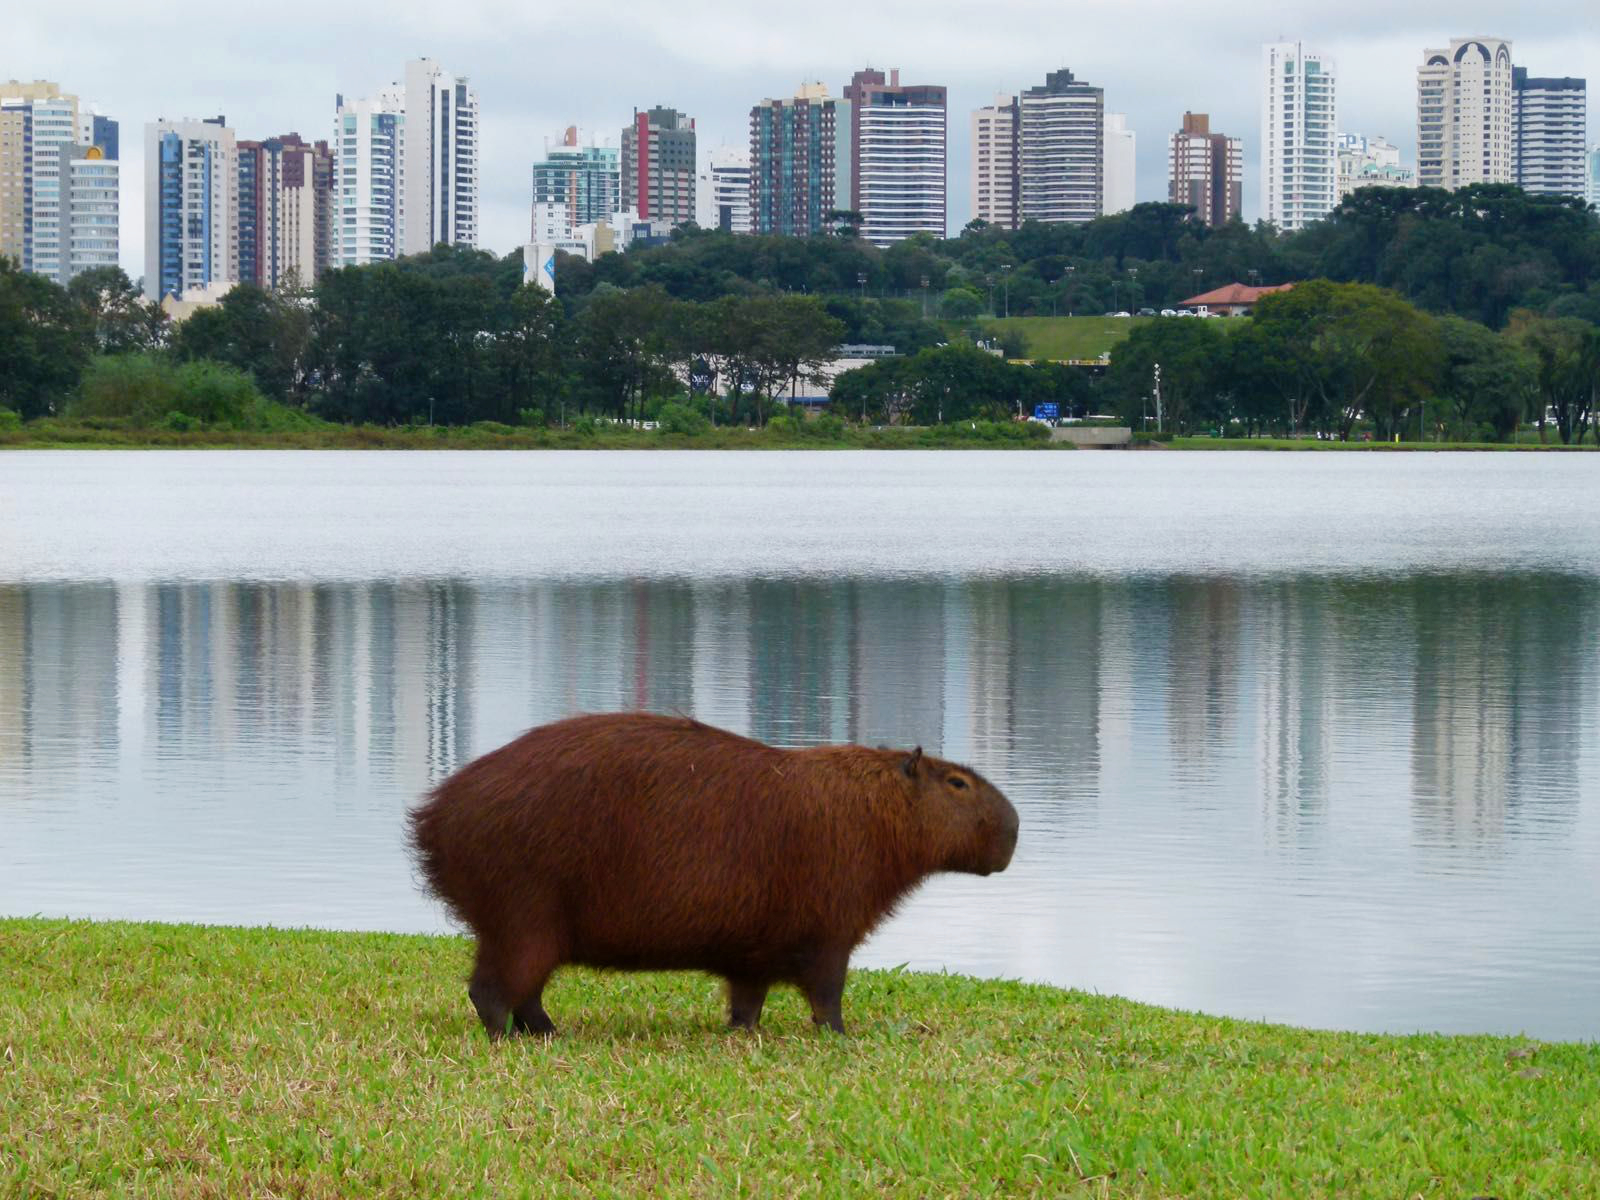 Aforementioned Capivara